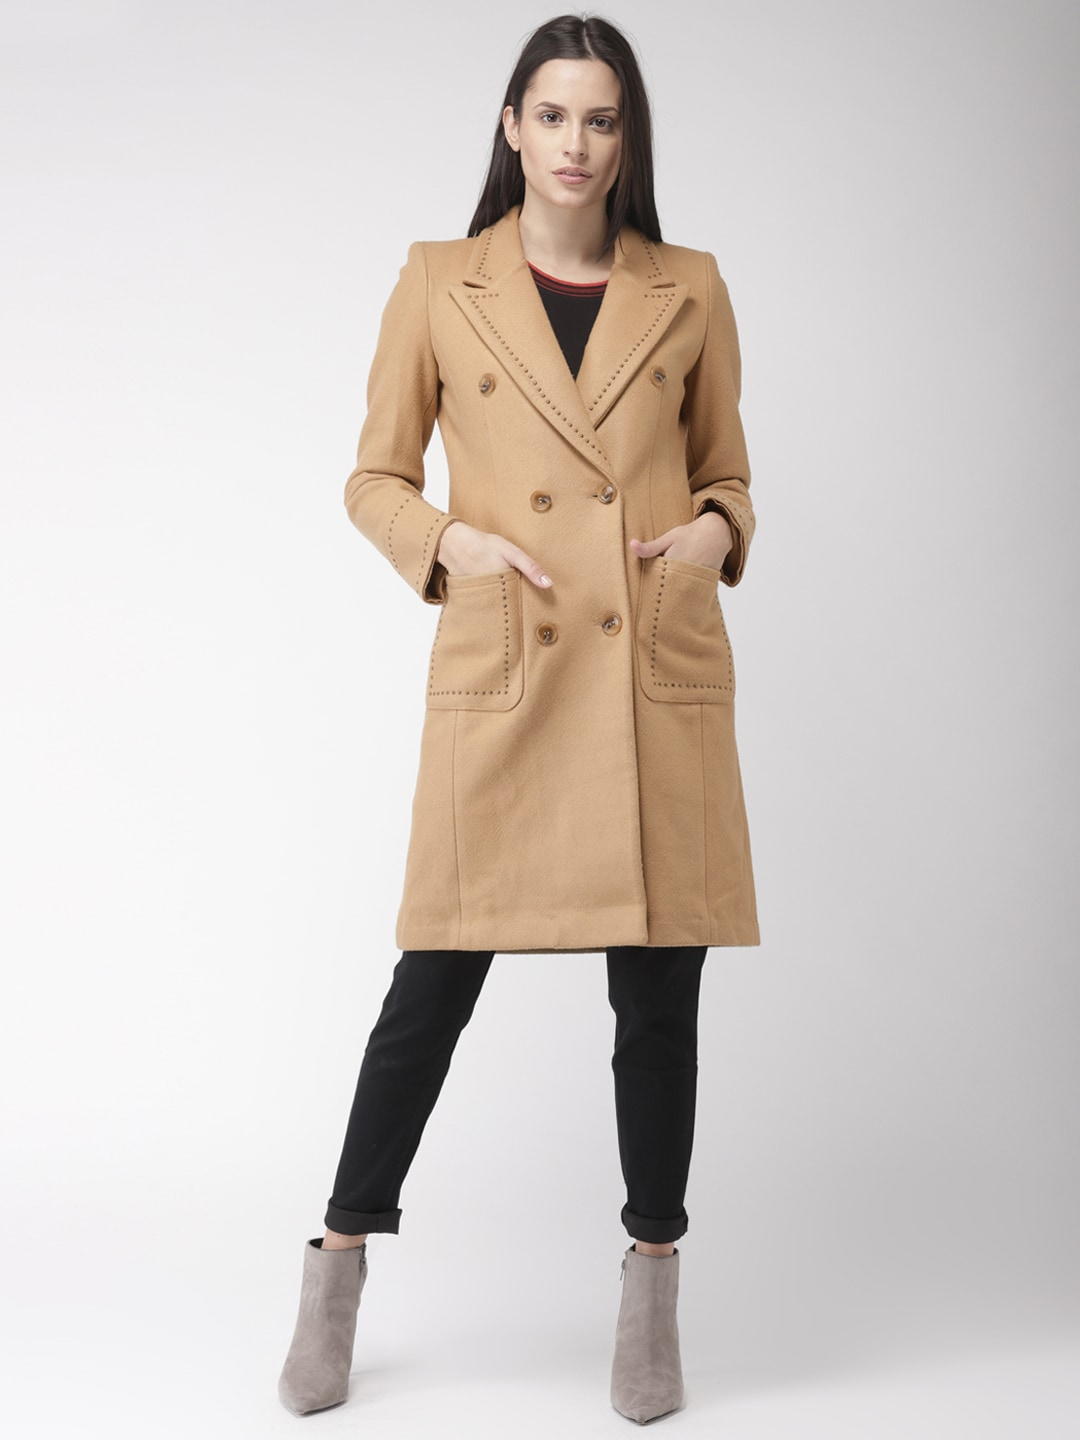 fdf4f100720 Trench Coats - Buy Trench Coats online in India